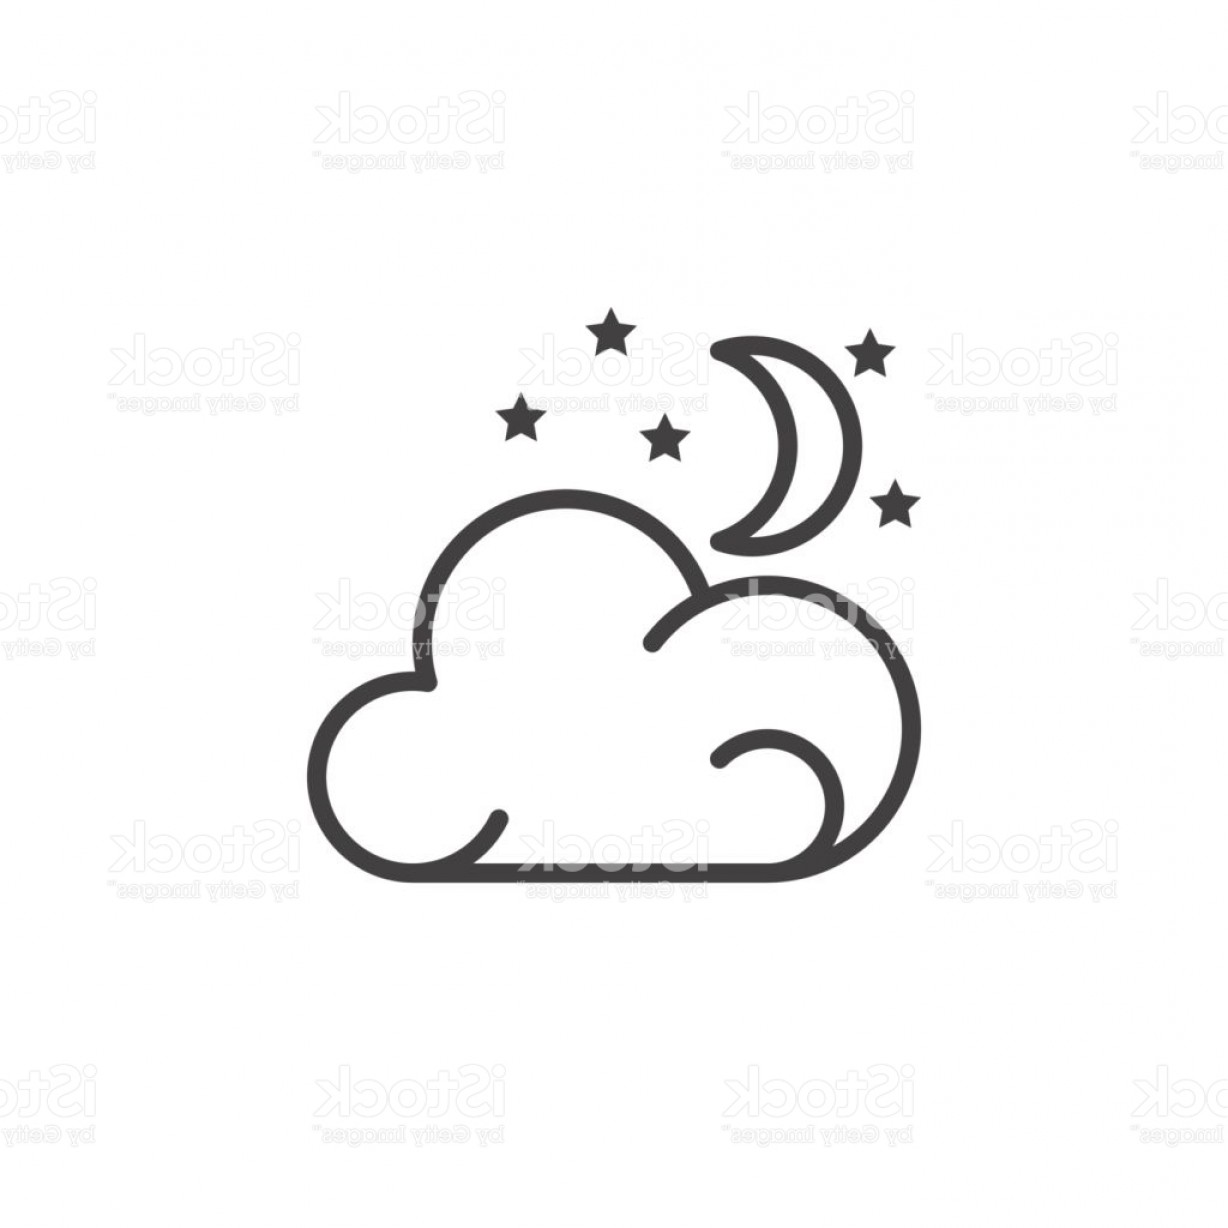 Cloud Outline Vector Black And White: Moon Stars Cloud Line Icon Outline Vector Sign Linear Pictogram Isolated On White Gm